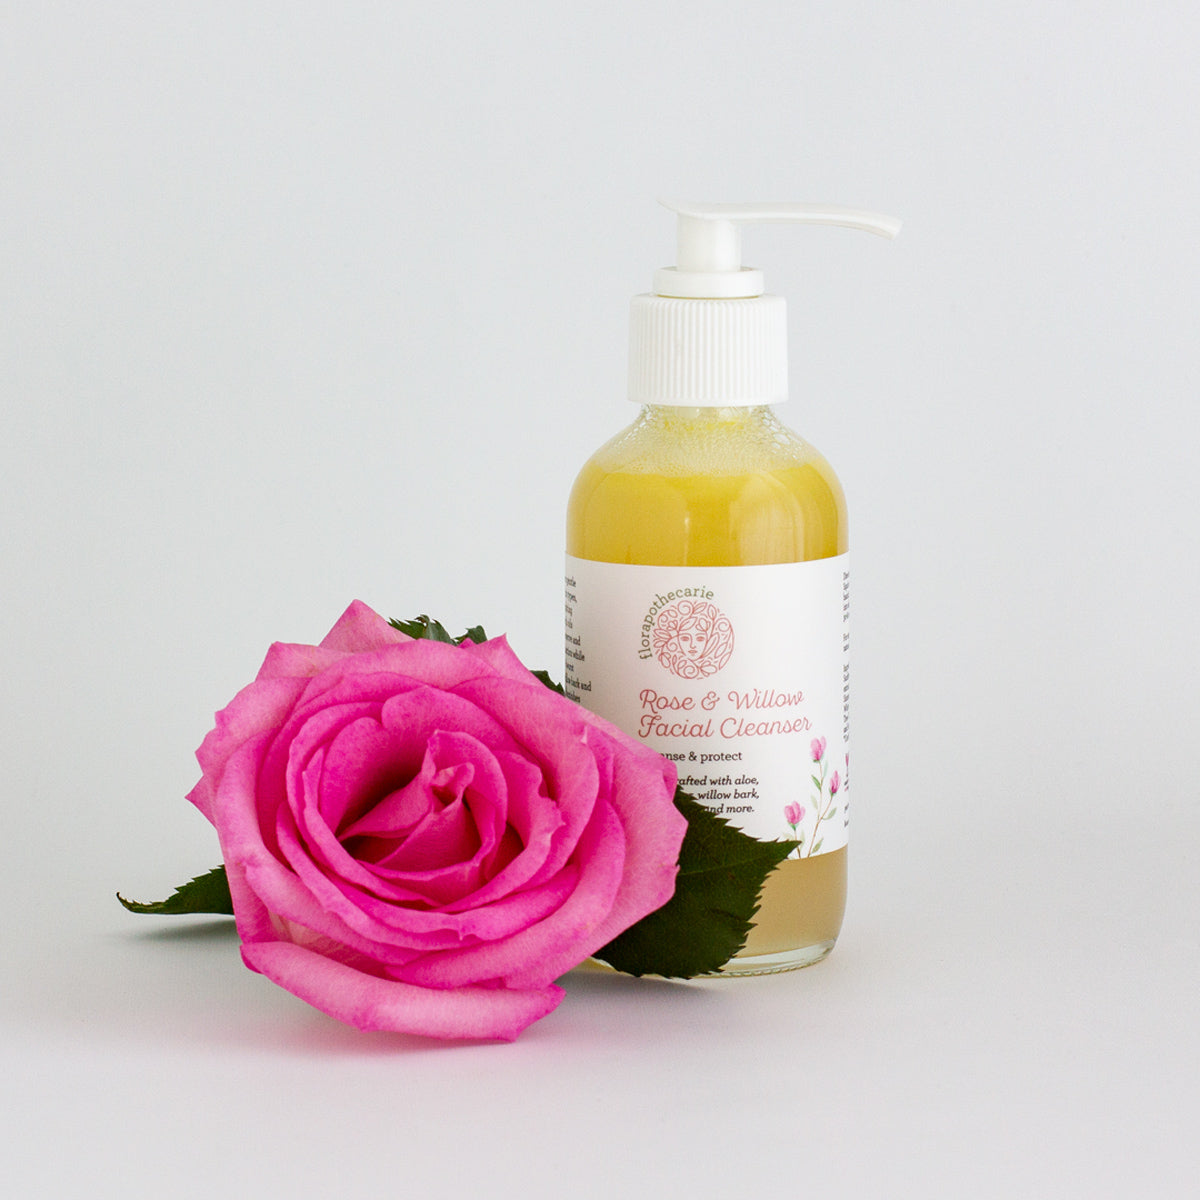 Rose & Willow Facial Cleanser